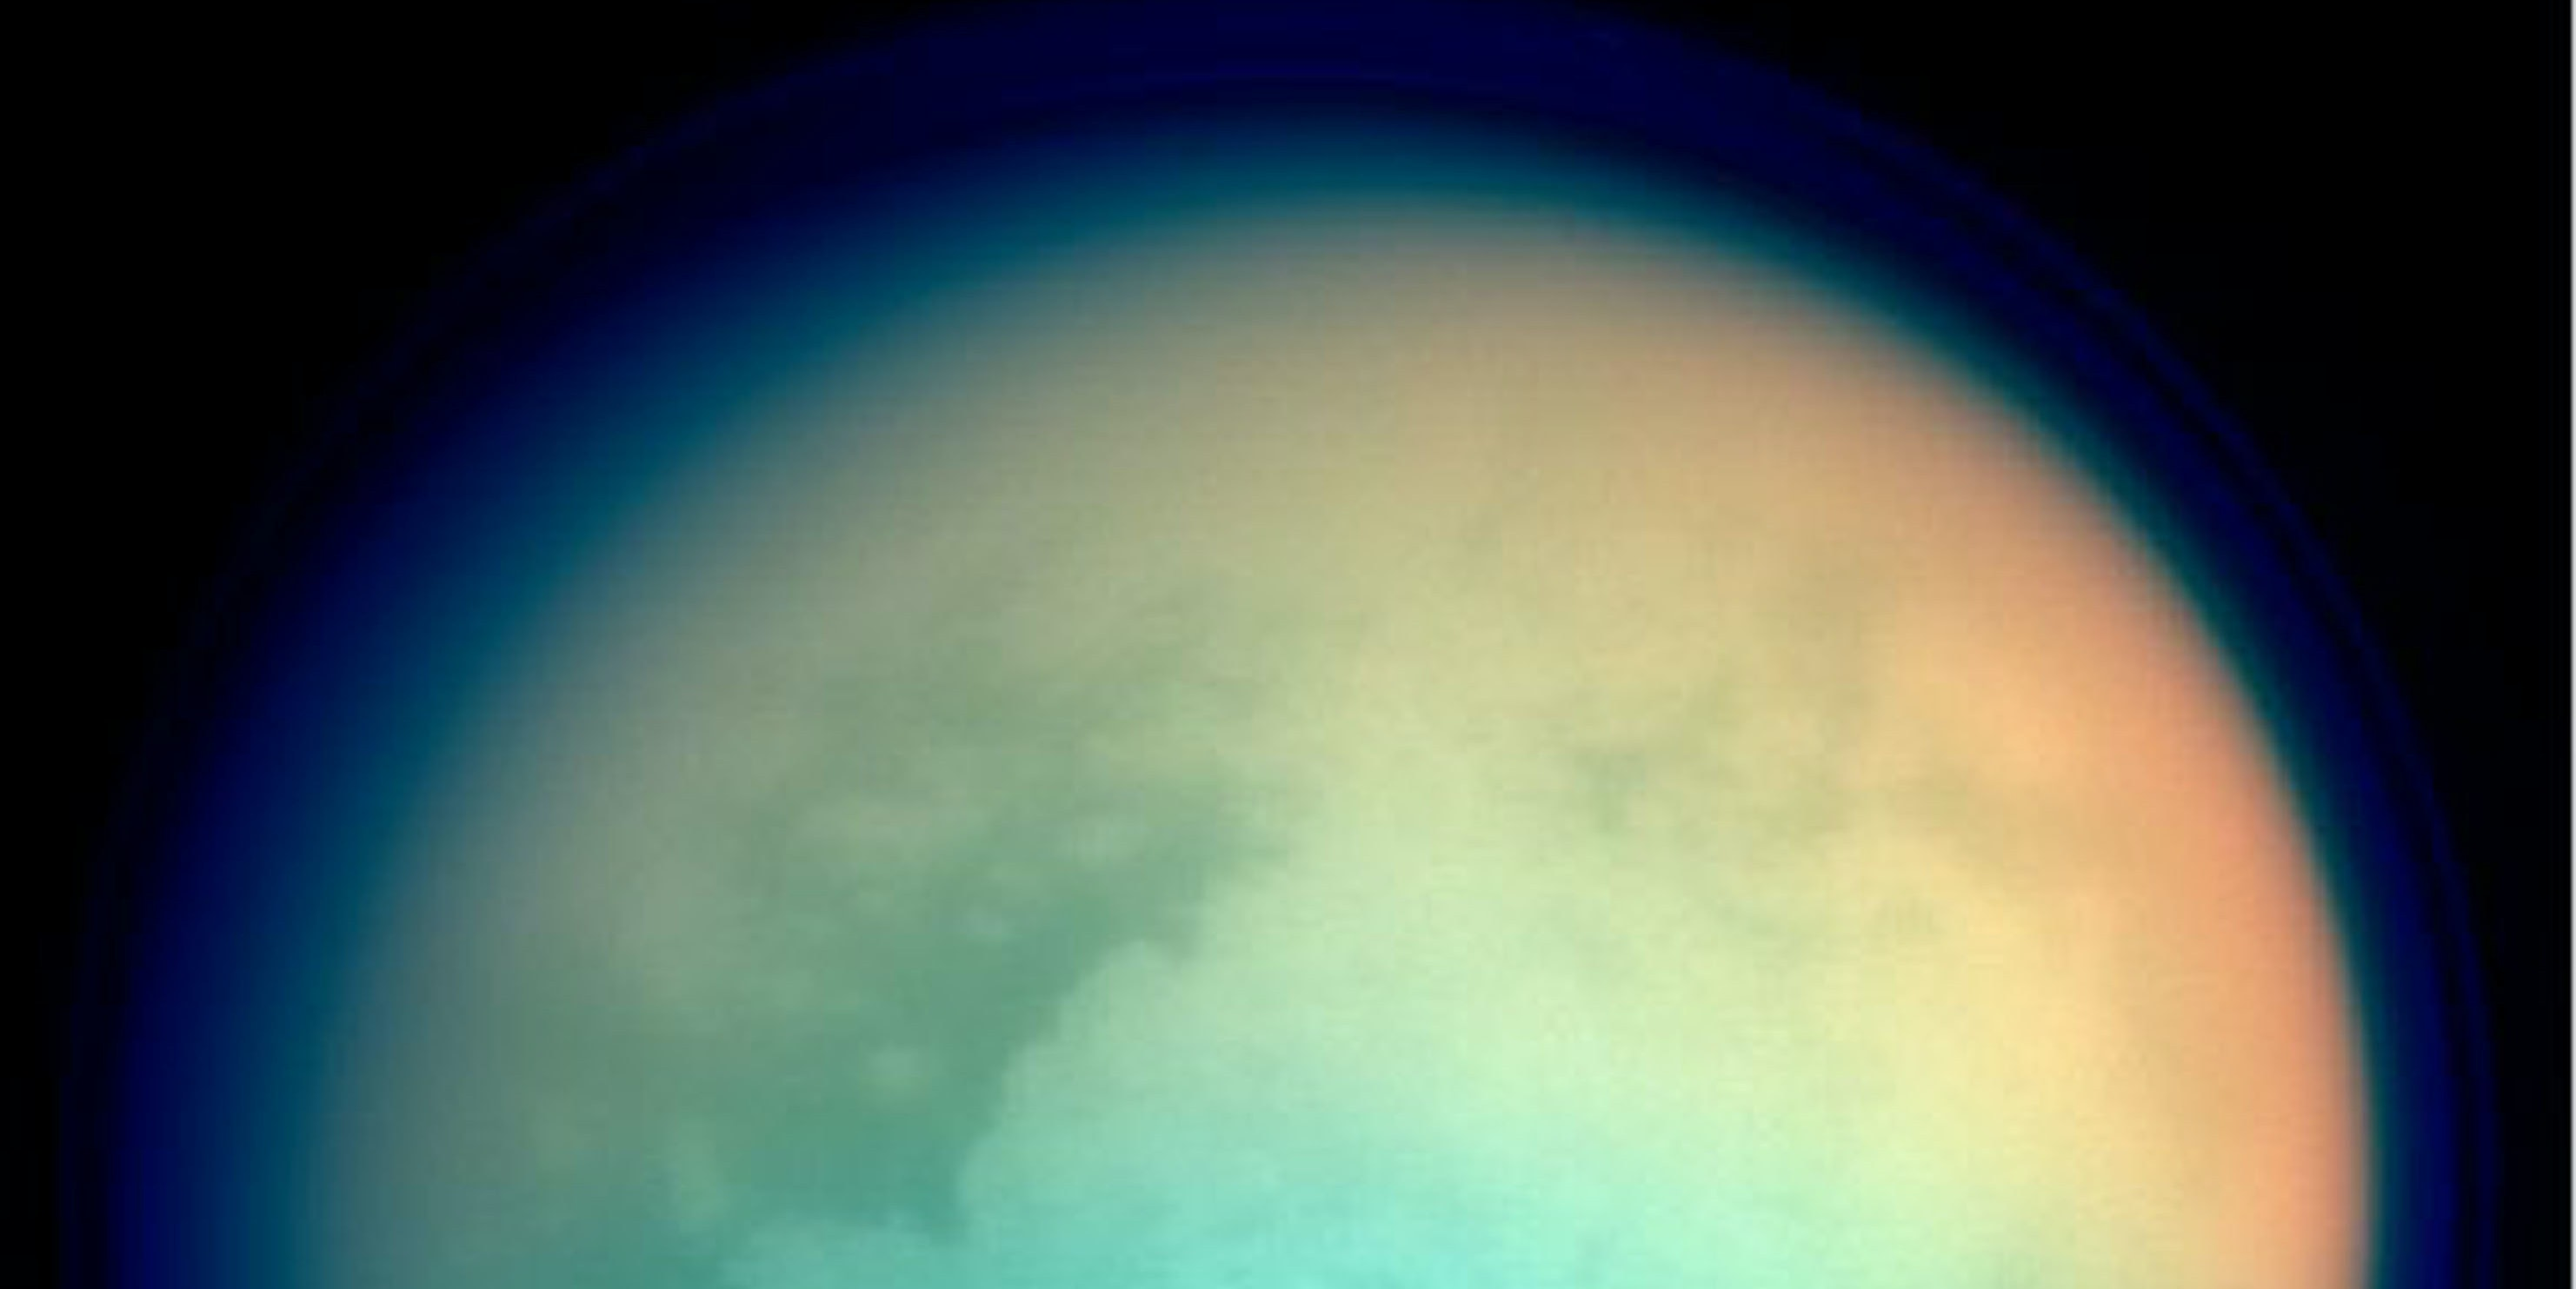 If you had to pick just one place to look for extant life, Titan would be a respectable way to go.